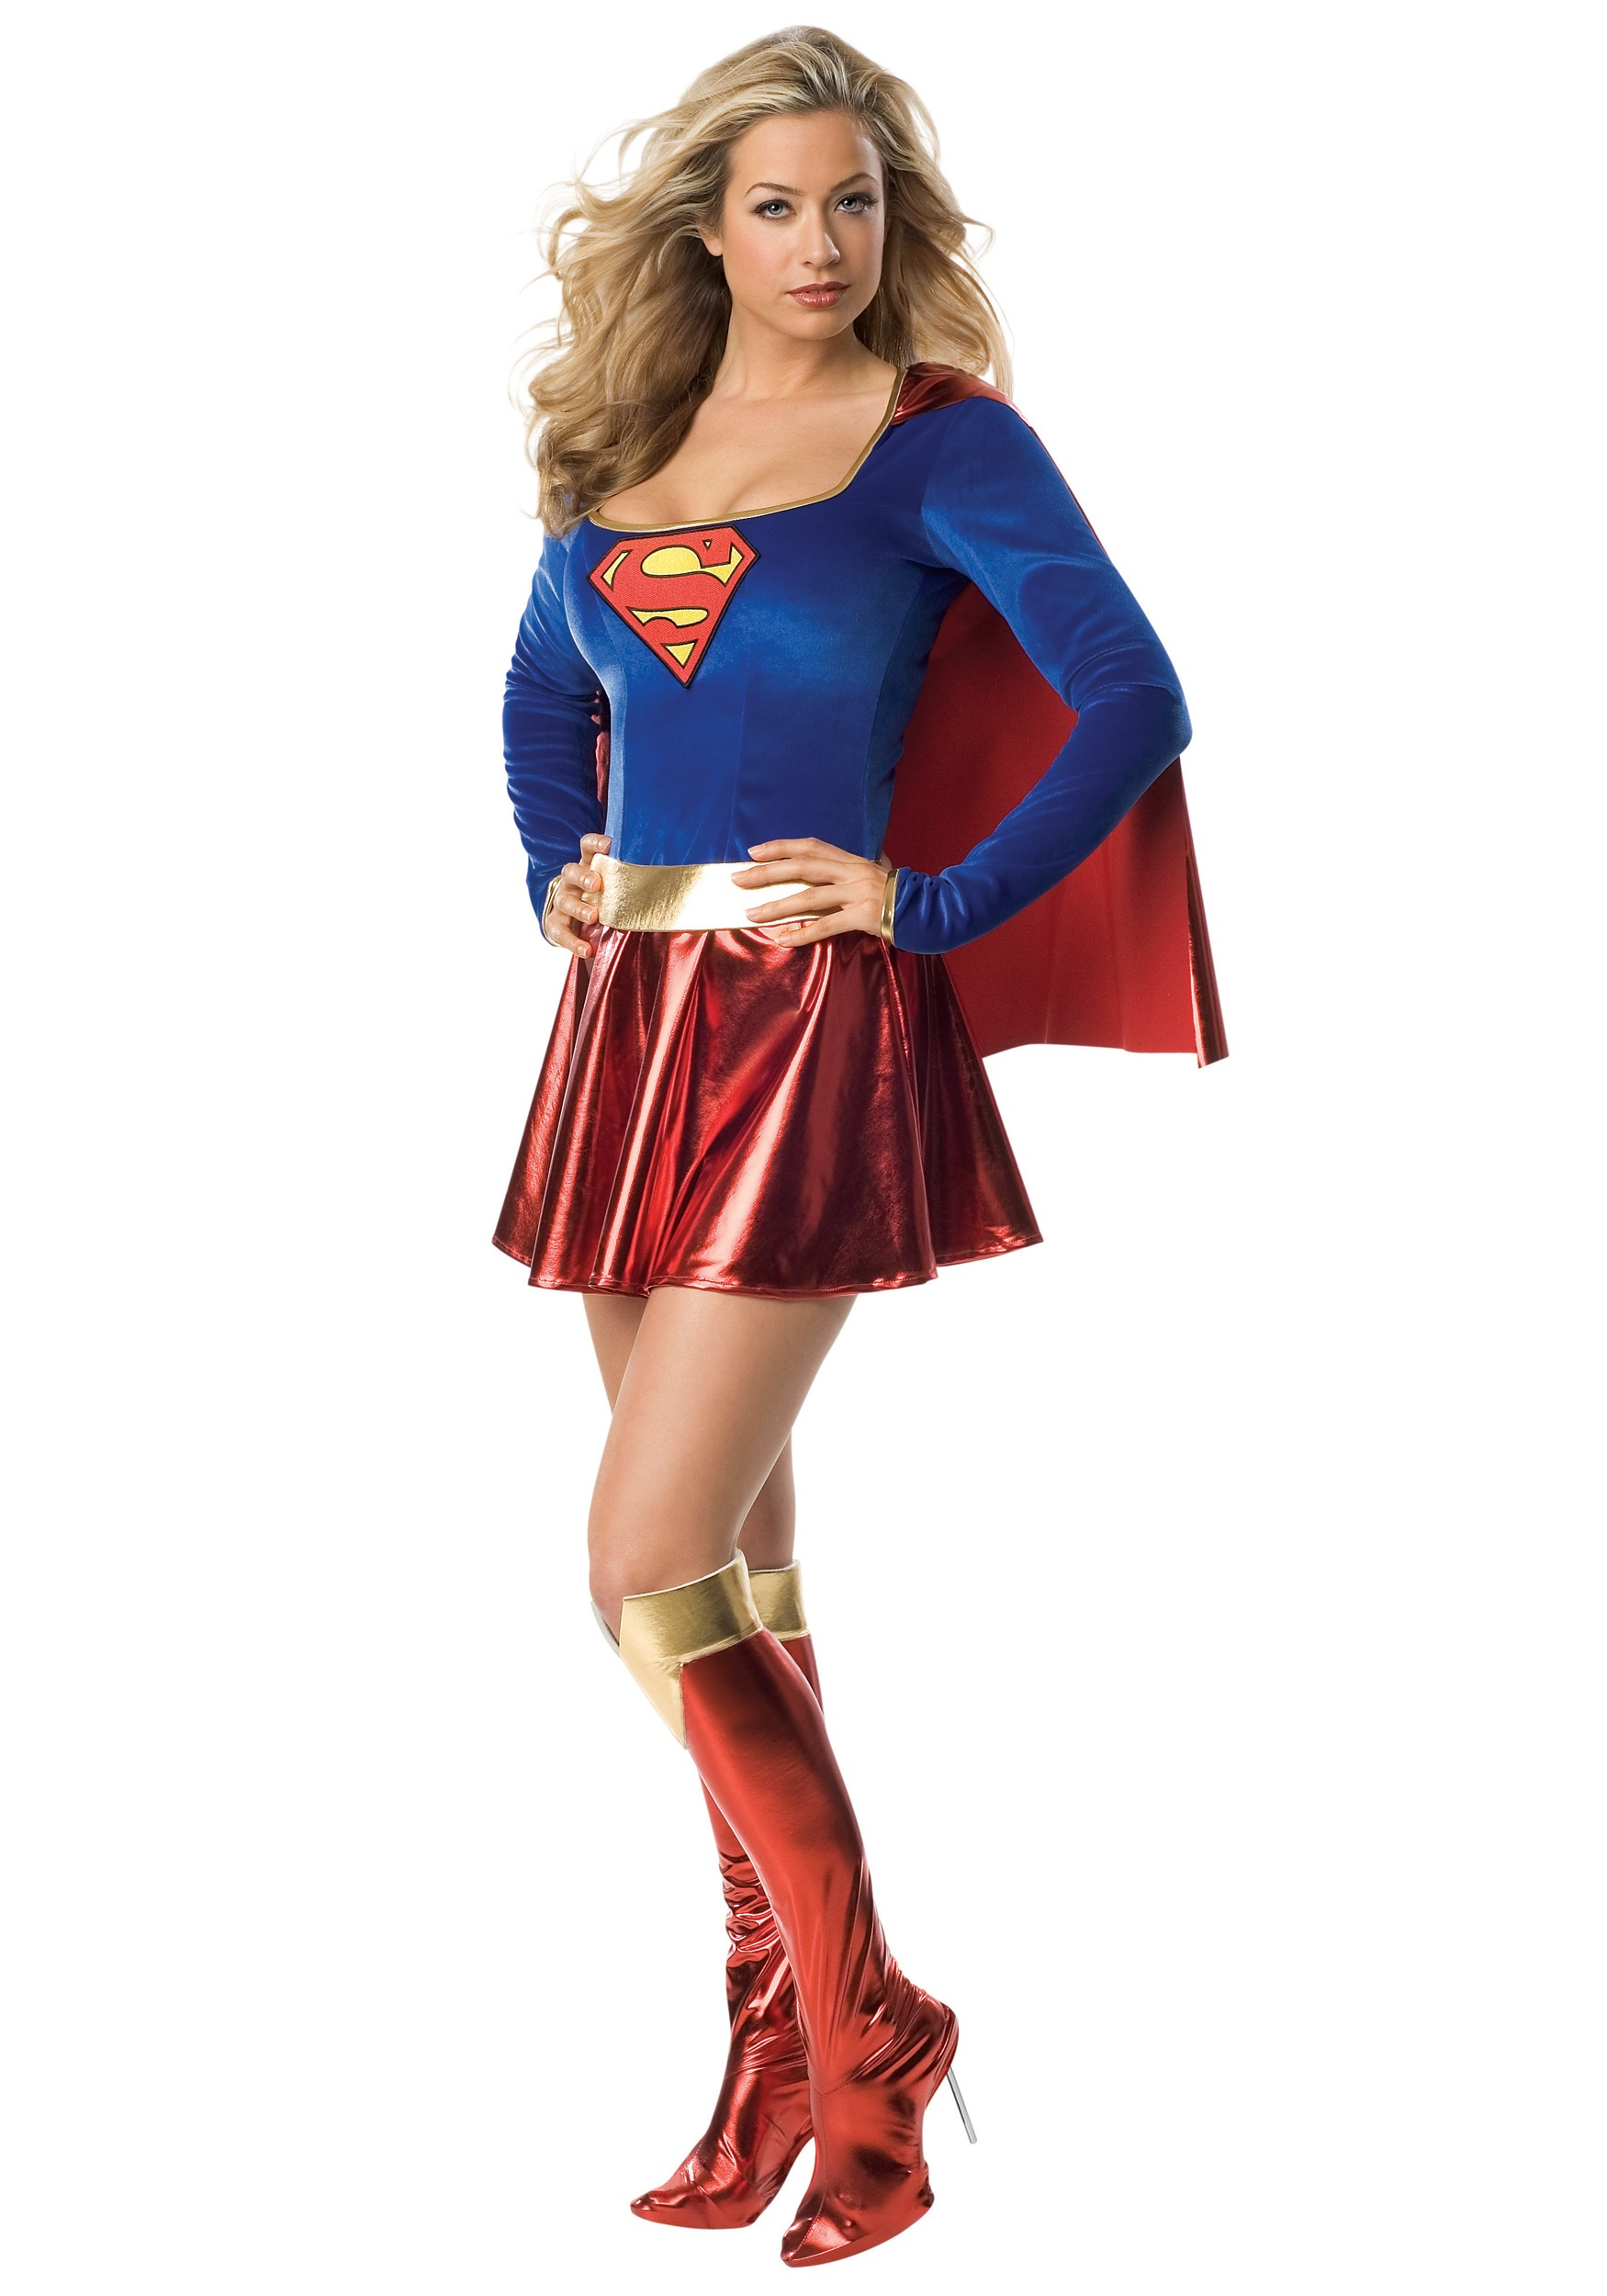 Download this Women Sexy Supergirl Costume picture